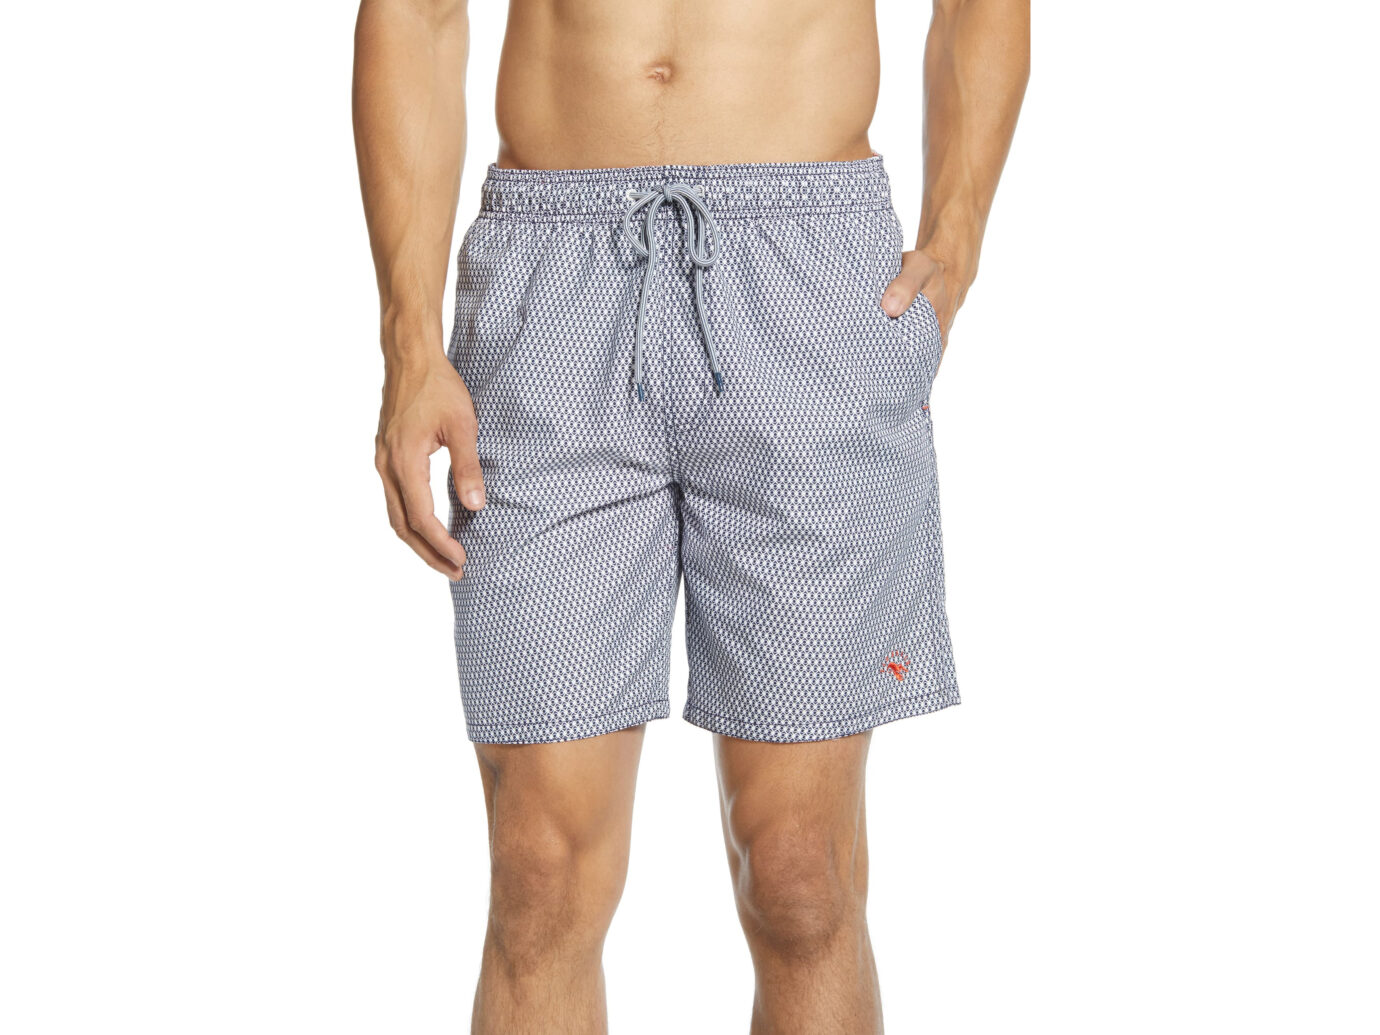 Mens Swim Trunks Striped Texture Gray Classic Quick Dry Beach Short.